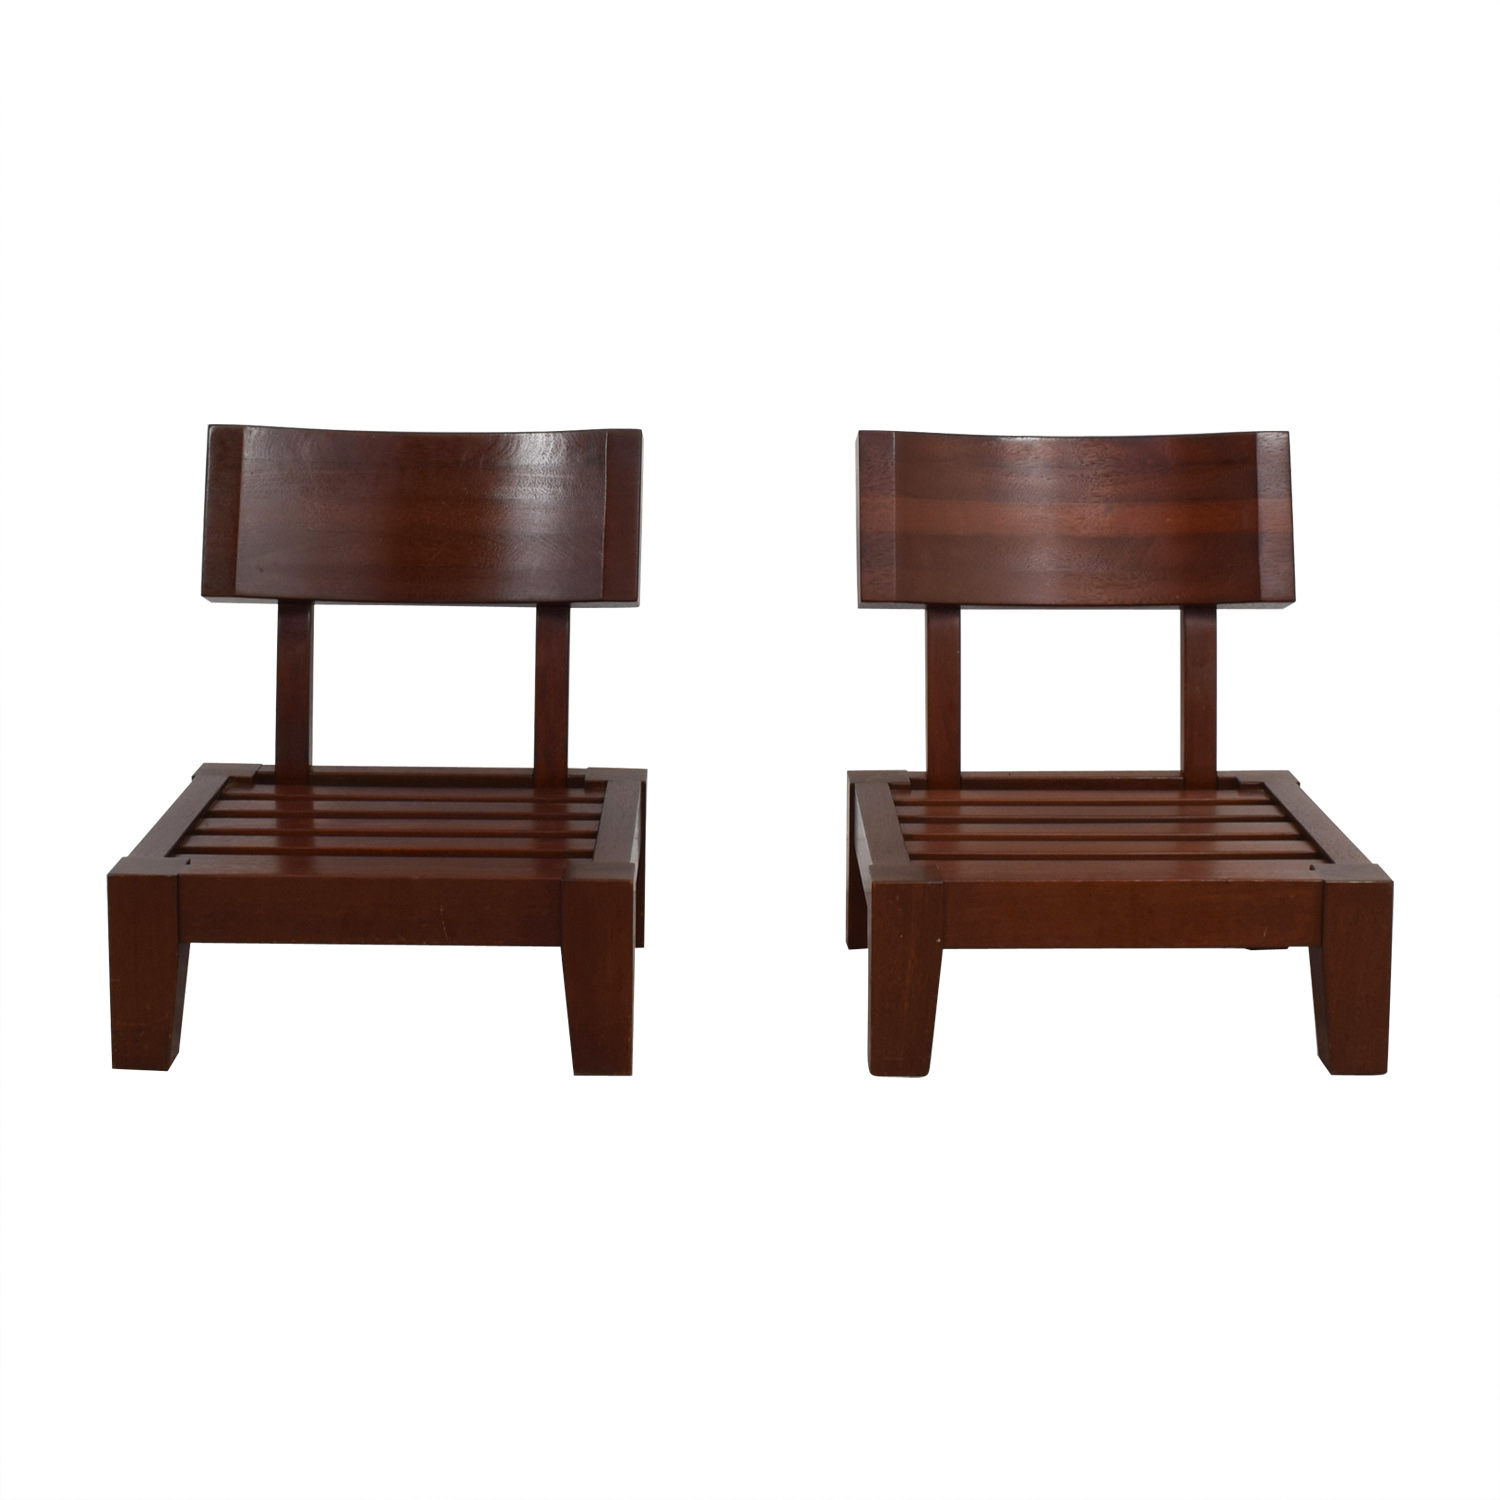 Sitting Chairs 87 Off Mahogany Wood Sitting Chairs Chairs